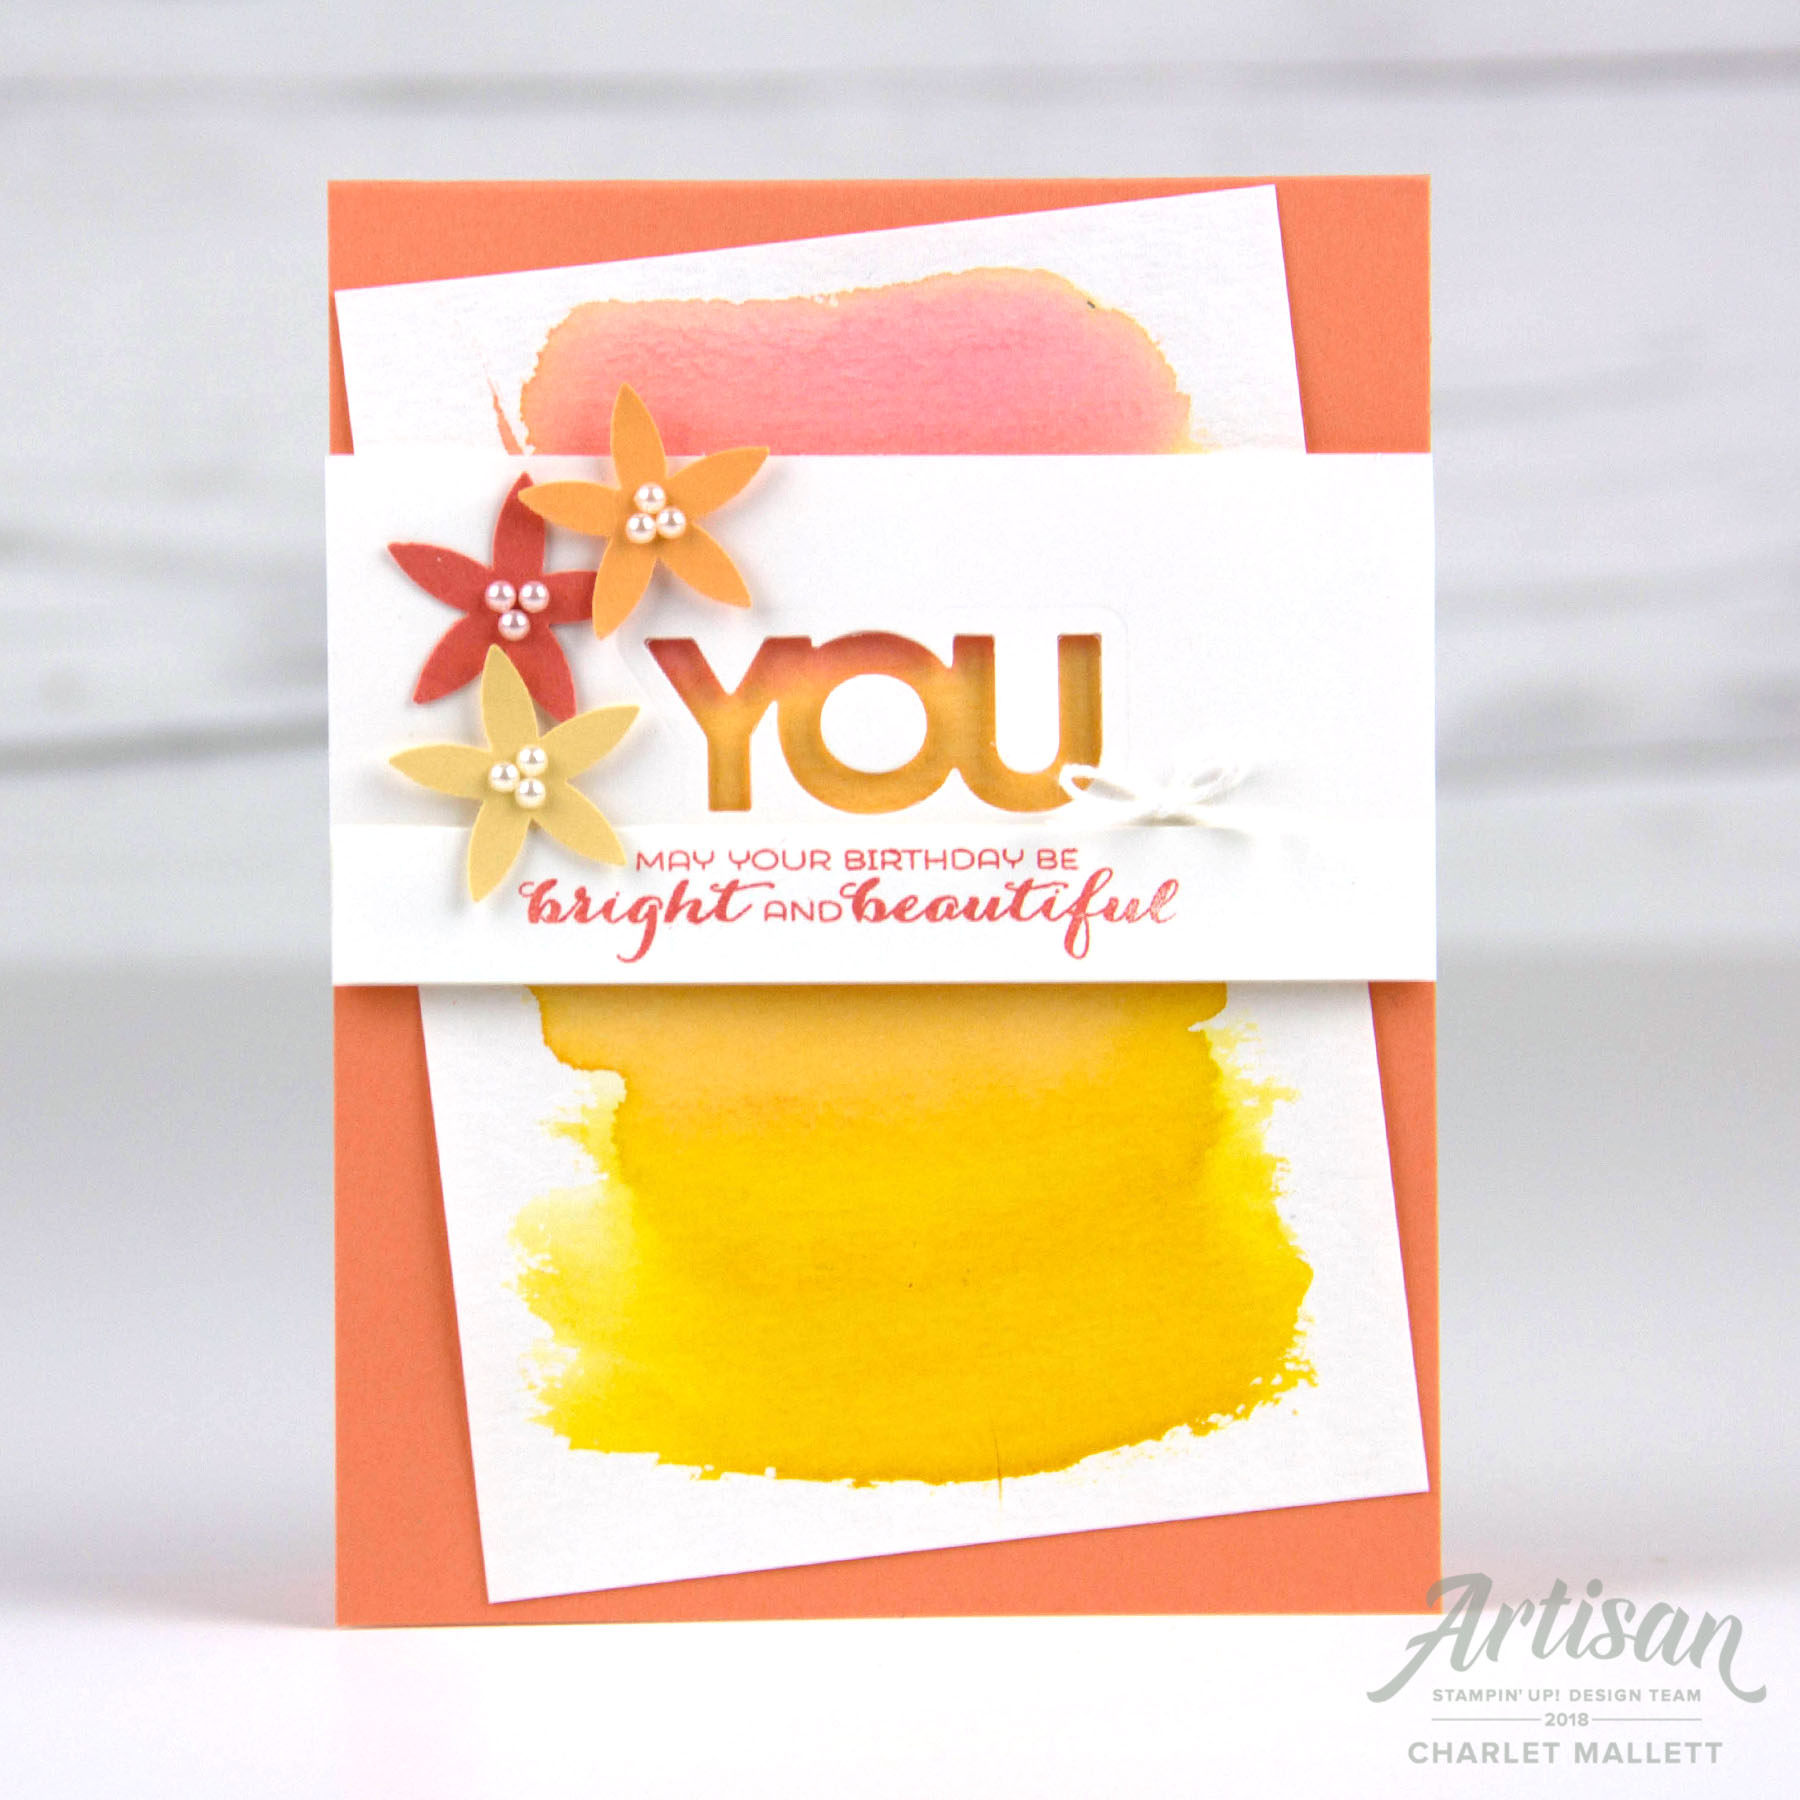 Sunshine & Rainbows stamp set - BRIGHT YOU card - Charlet Mallett, Stampin' Up!